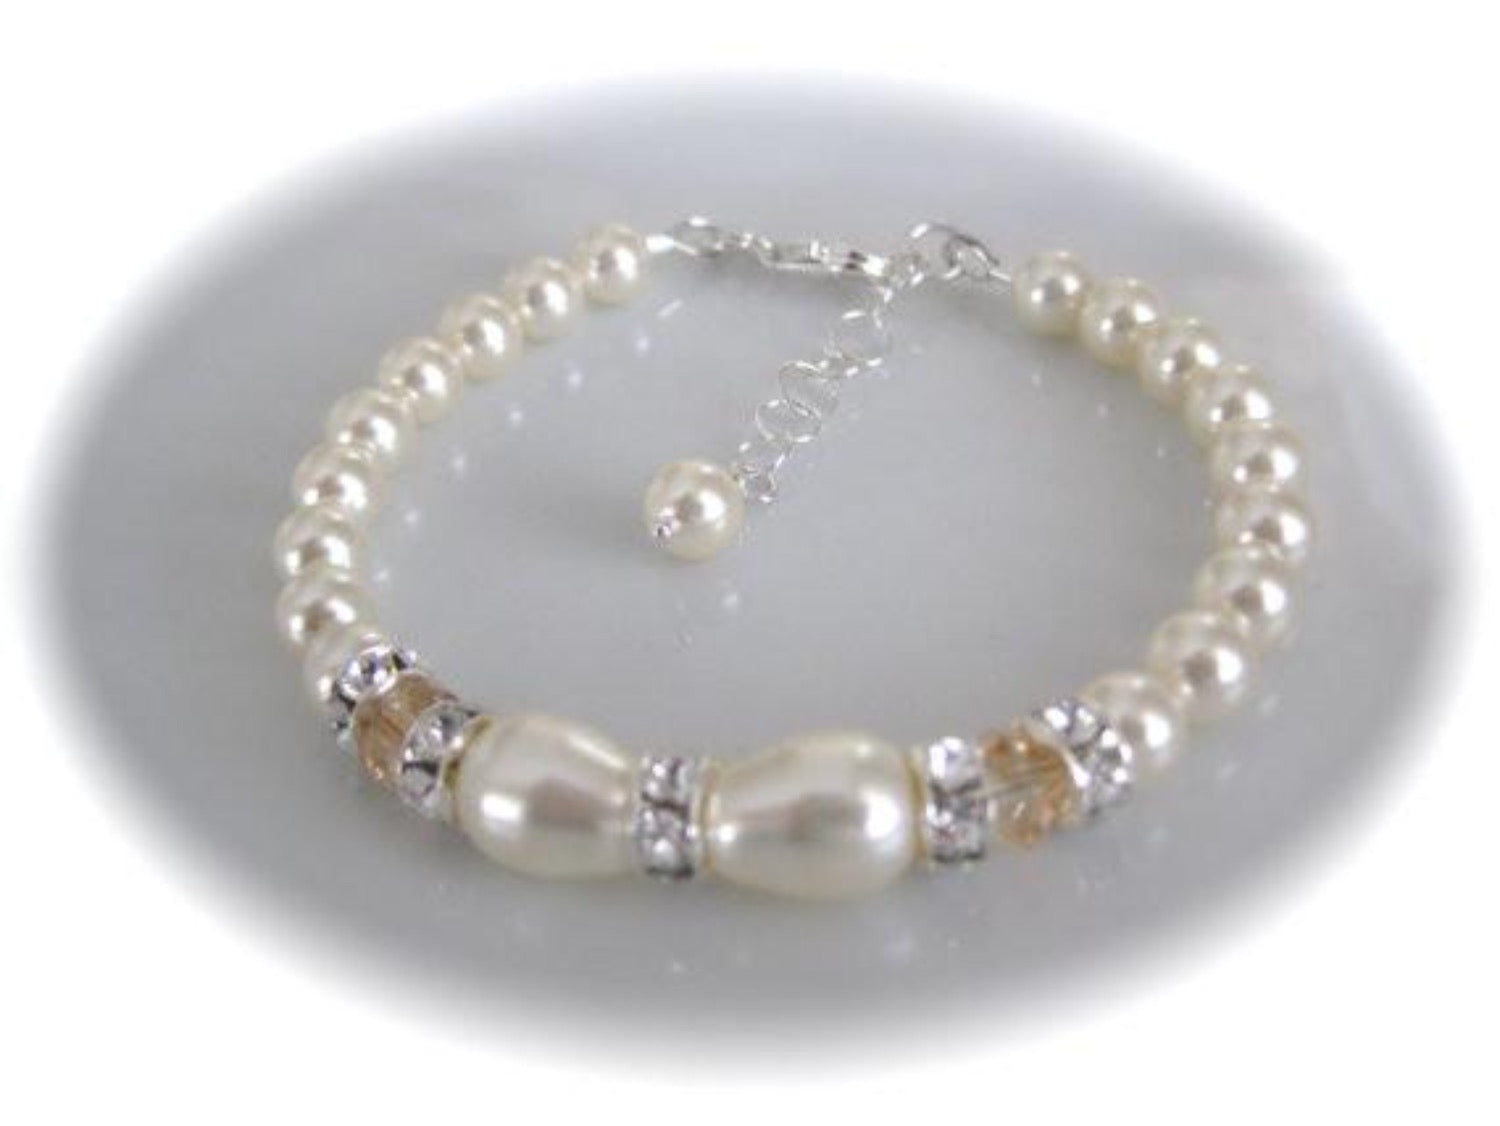 Elegant wedding jewelry set, ivory pearl and crystal necklace bracelet bridal jewelry set - Clairesbridal - 2